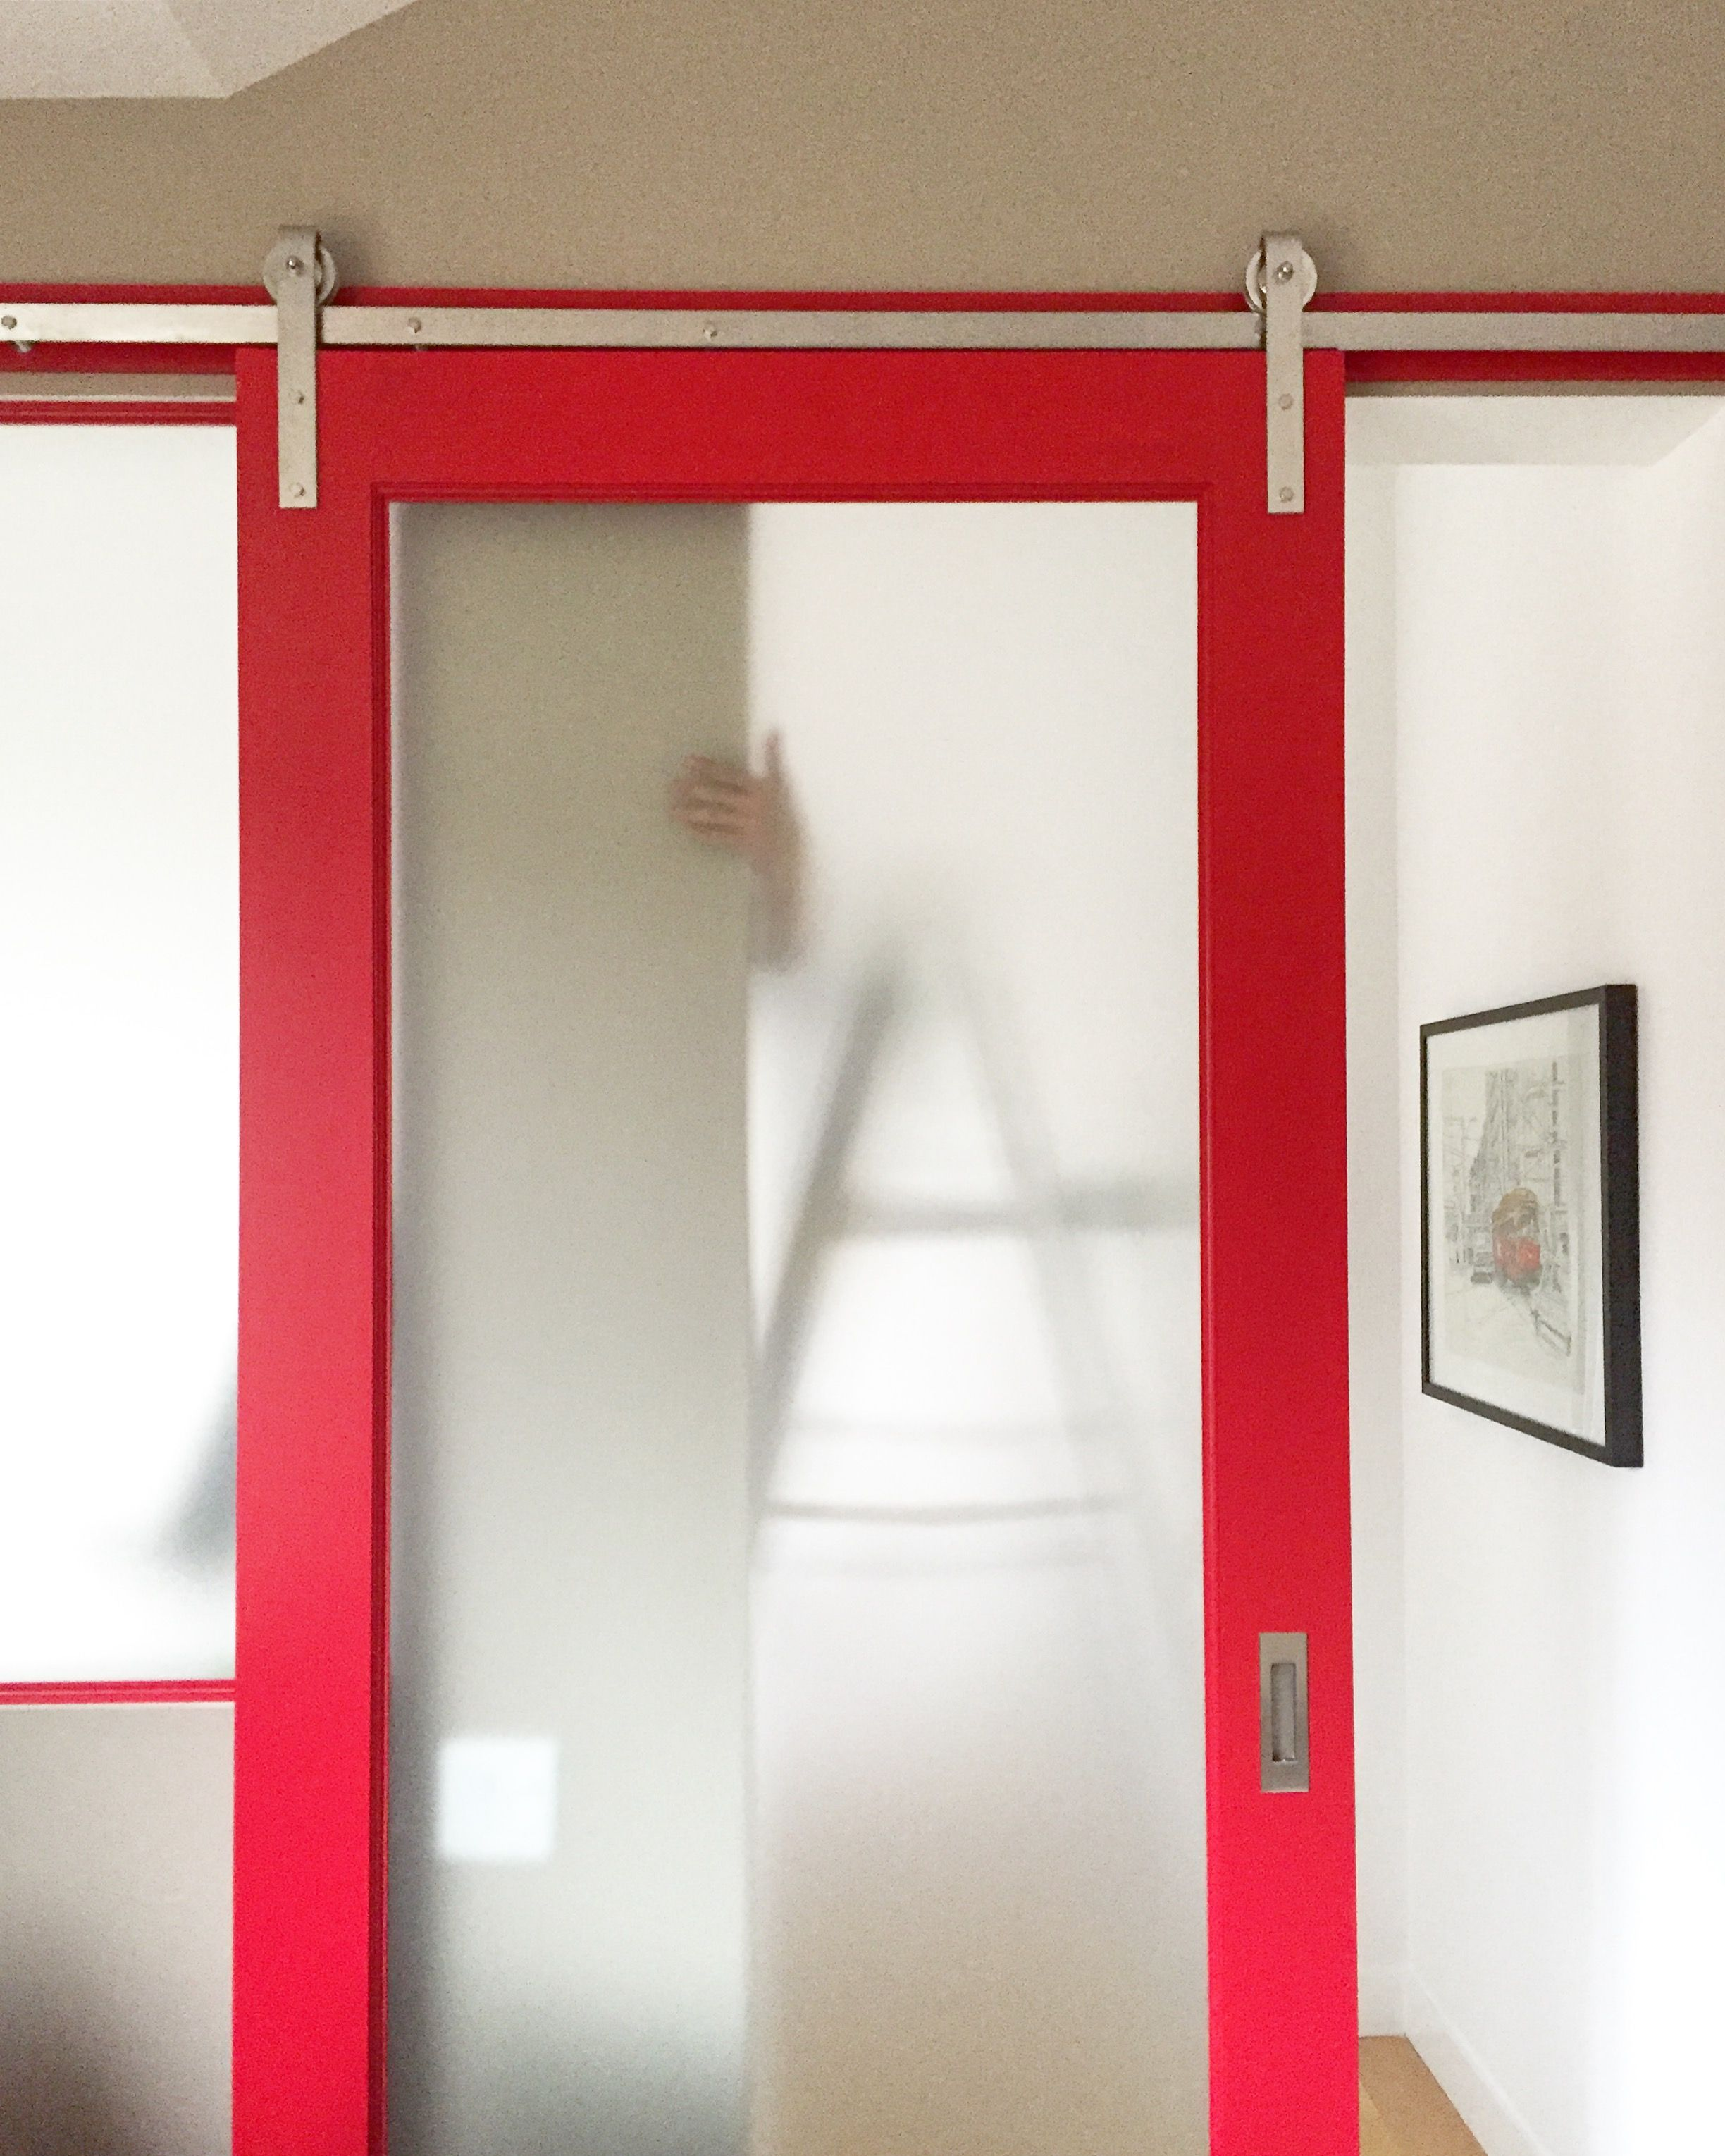 Red Door We Made To Go On Our Very Own Stainless Steel Hardware. Made In